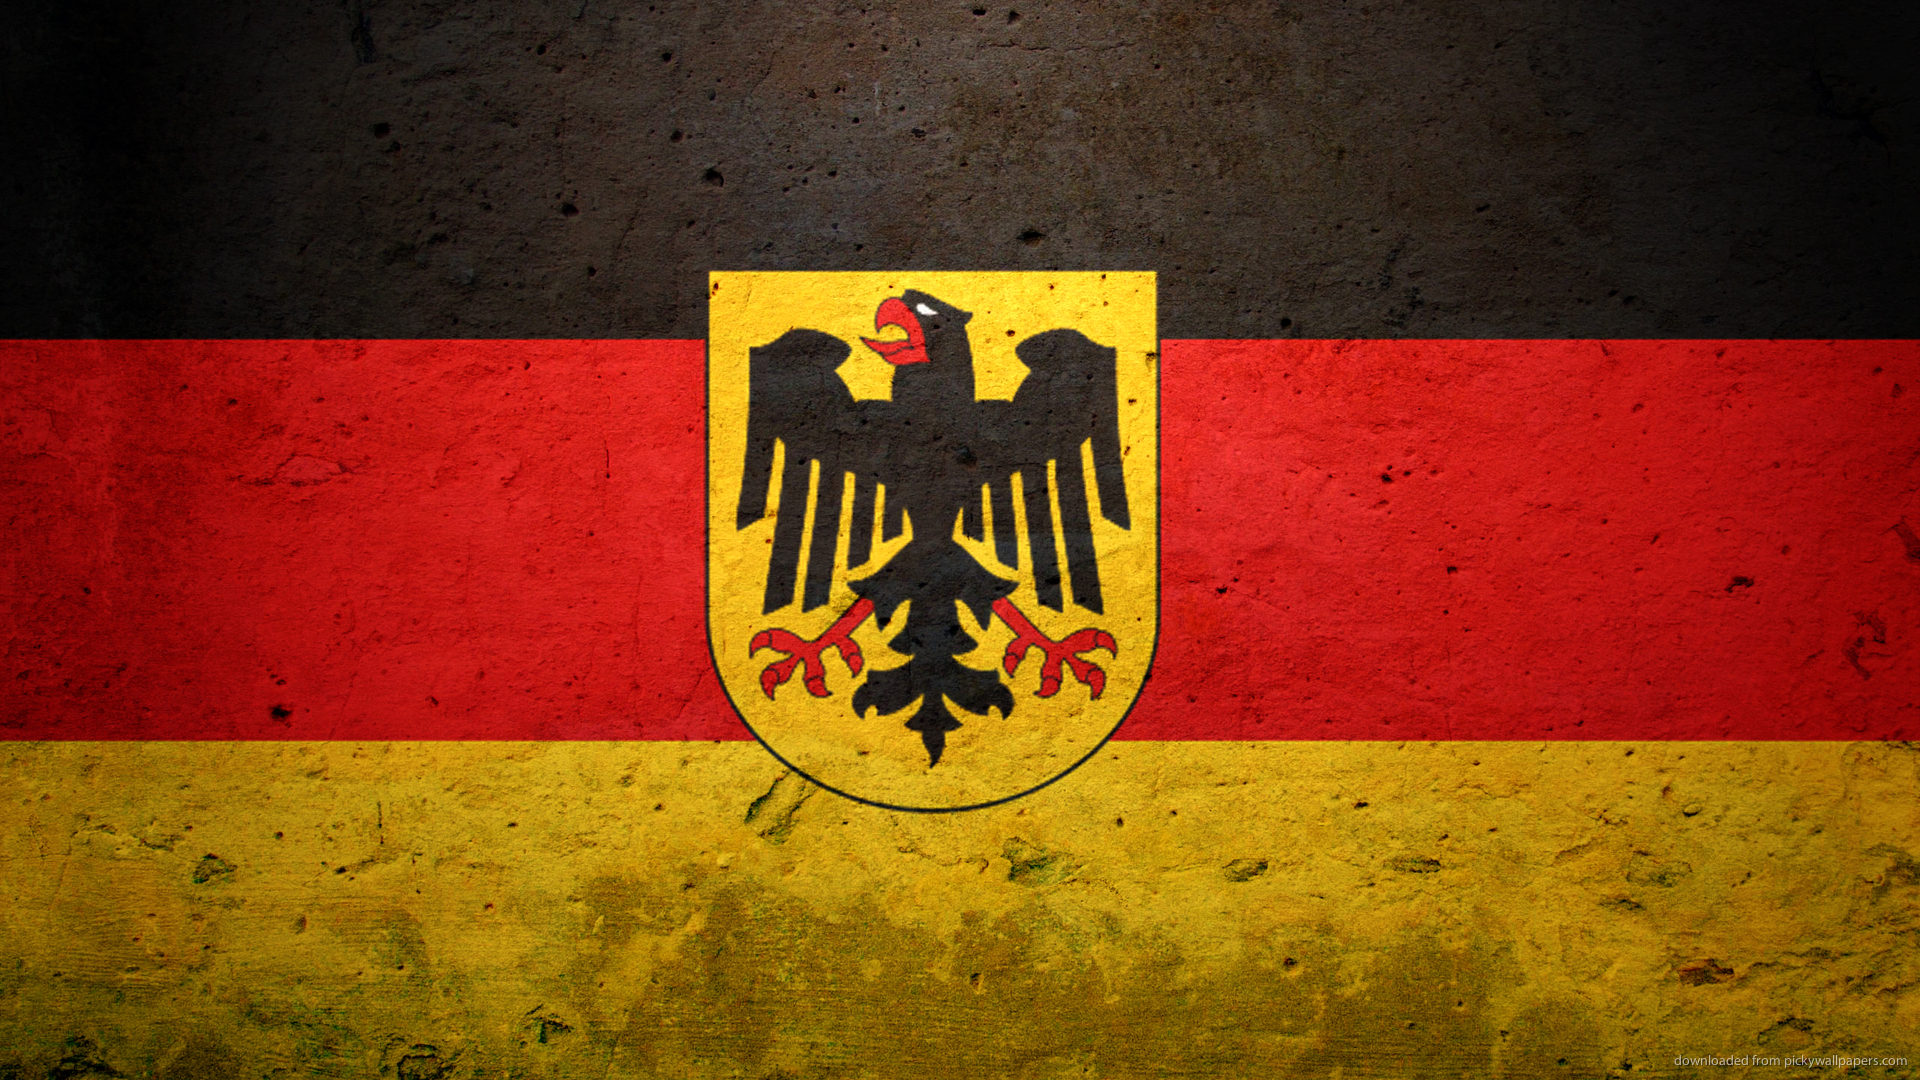 ... [orientation] => horizontal [ratio] => 16x9 [color] => [itemTitle] => Array ( [0] => wallpaper [1] => wallpapers ) [options] => Array ( ) ) German Flag ...